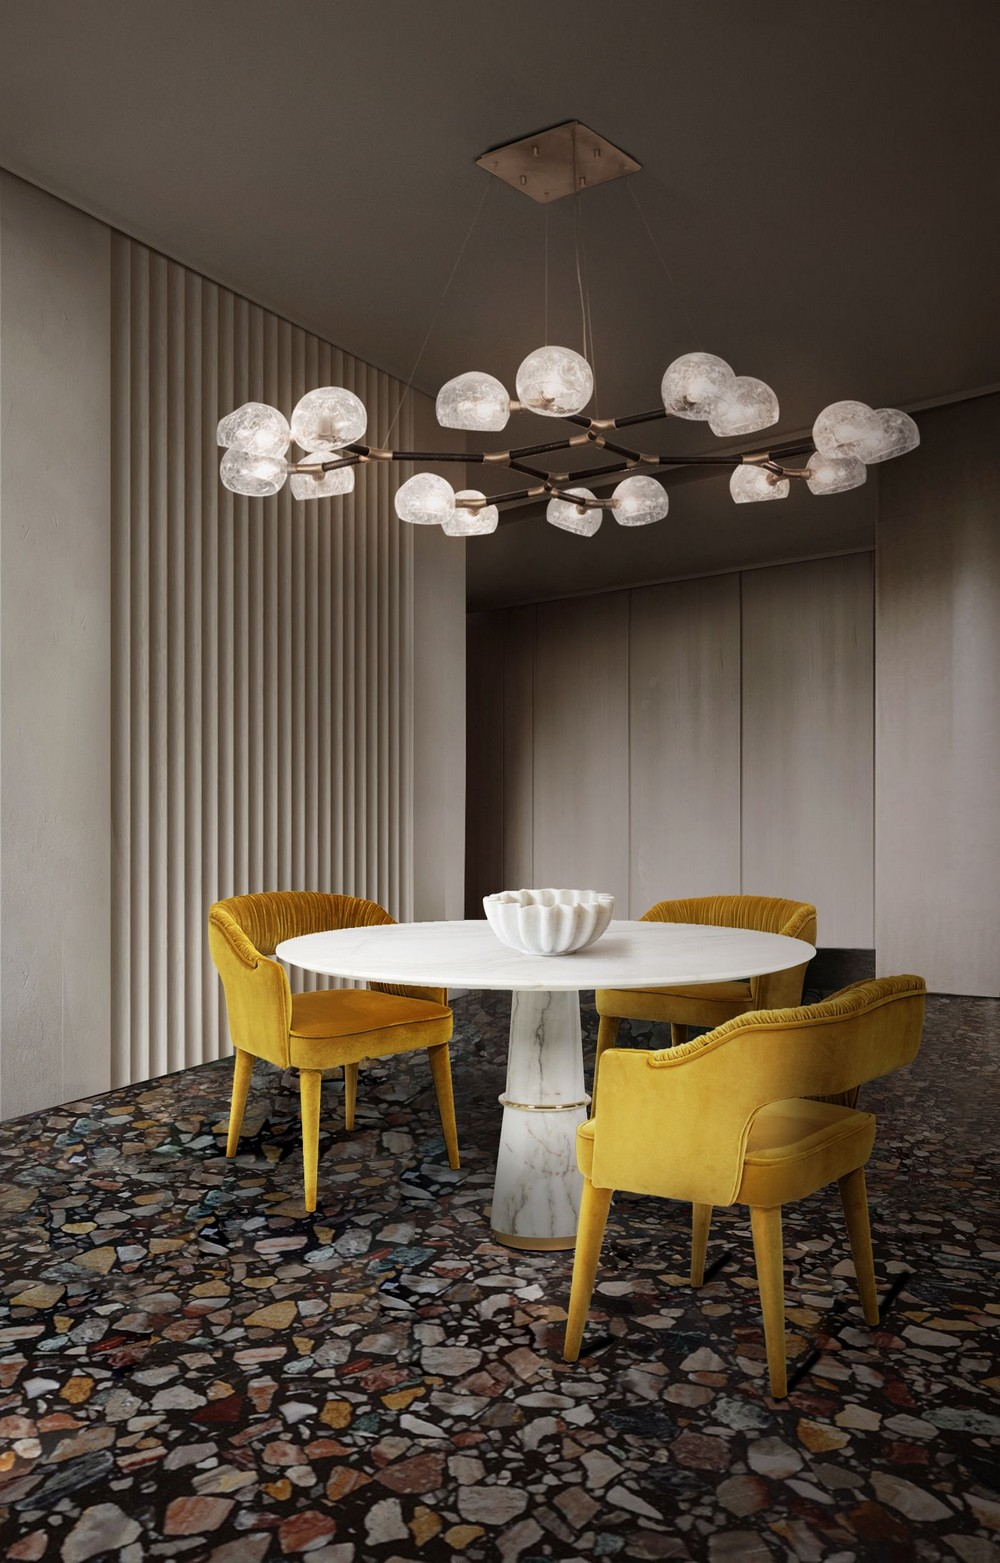 A Selection of Colorful Luxury Furniture For Your Dining Room luxury furniture A Selection of Colorful Luxury Furniture For Your Dining Room 2sKvTOw